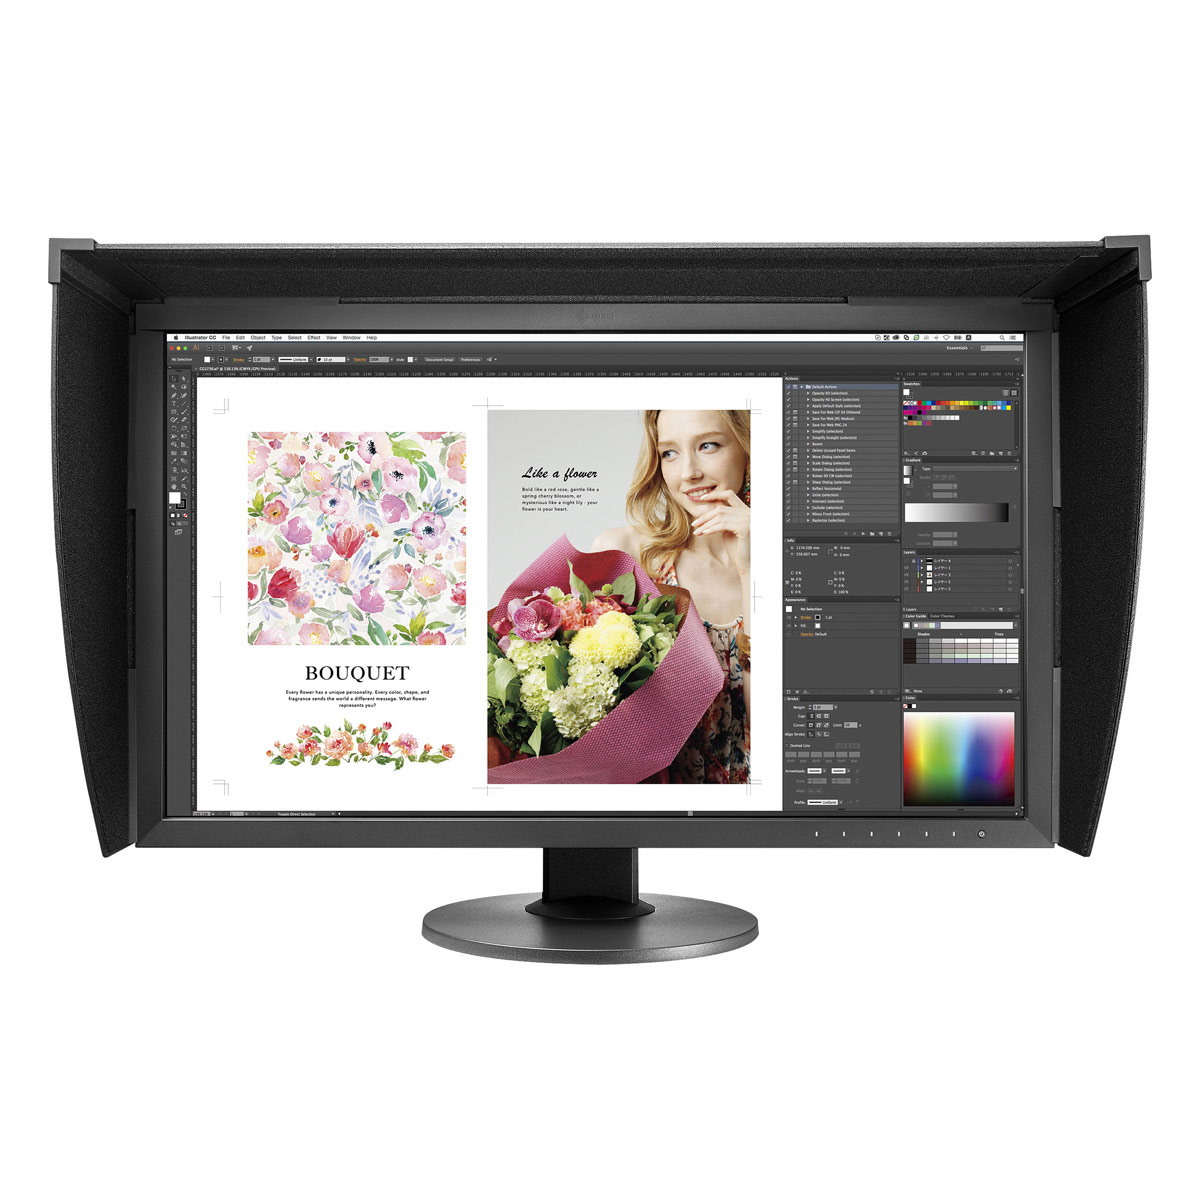 "EIZO 27"" ColorEdge CG2730 Self-Calibrating Display with Hood"